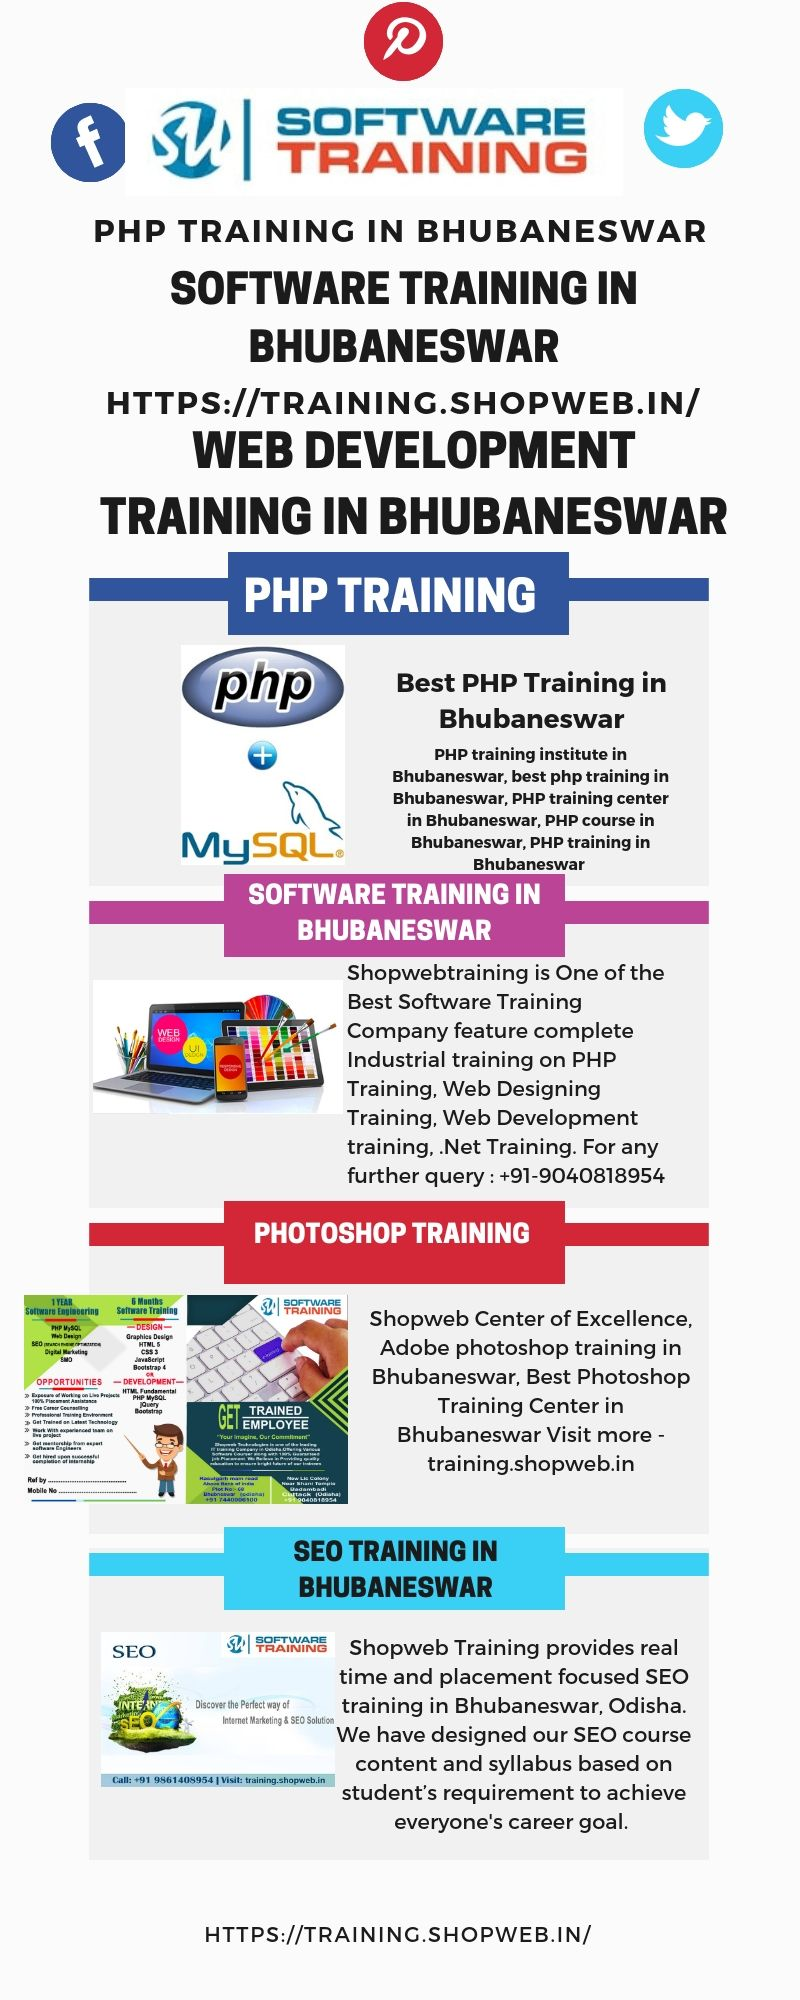 We Provide Professional Training Php In Bhubaneswar Php Training Center In Bhubaneswar Php Course In Bhubaneswar Web Development Training Train Bhubaneswar